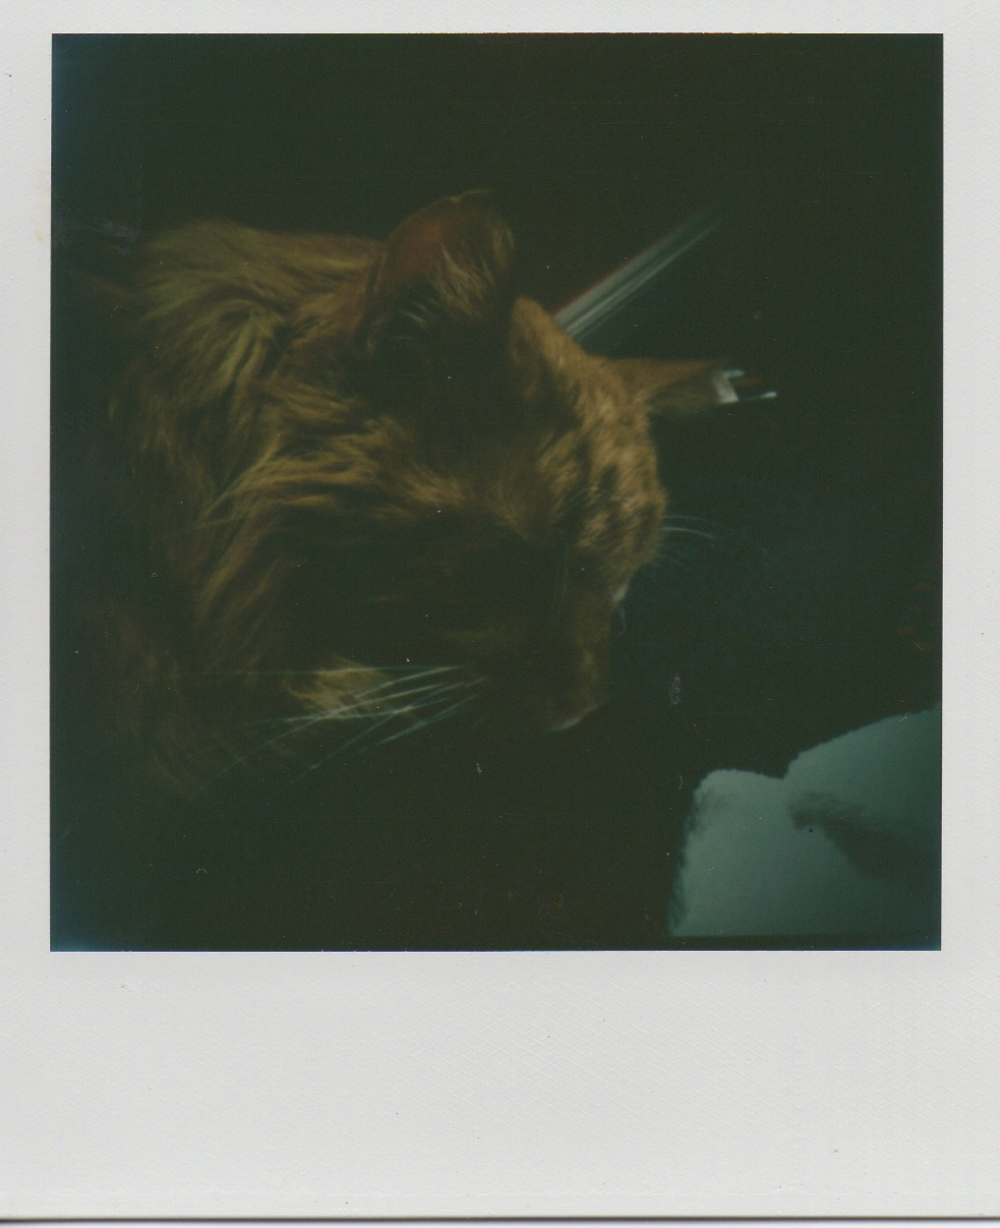 Converted with Instant lab